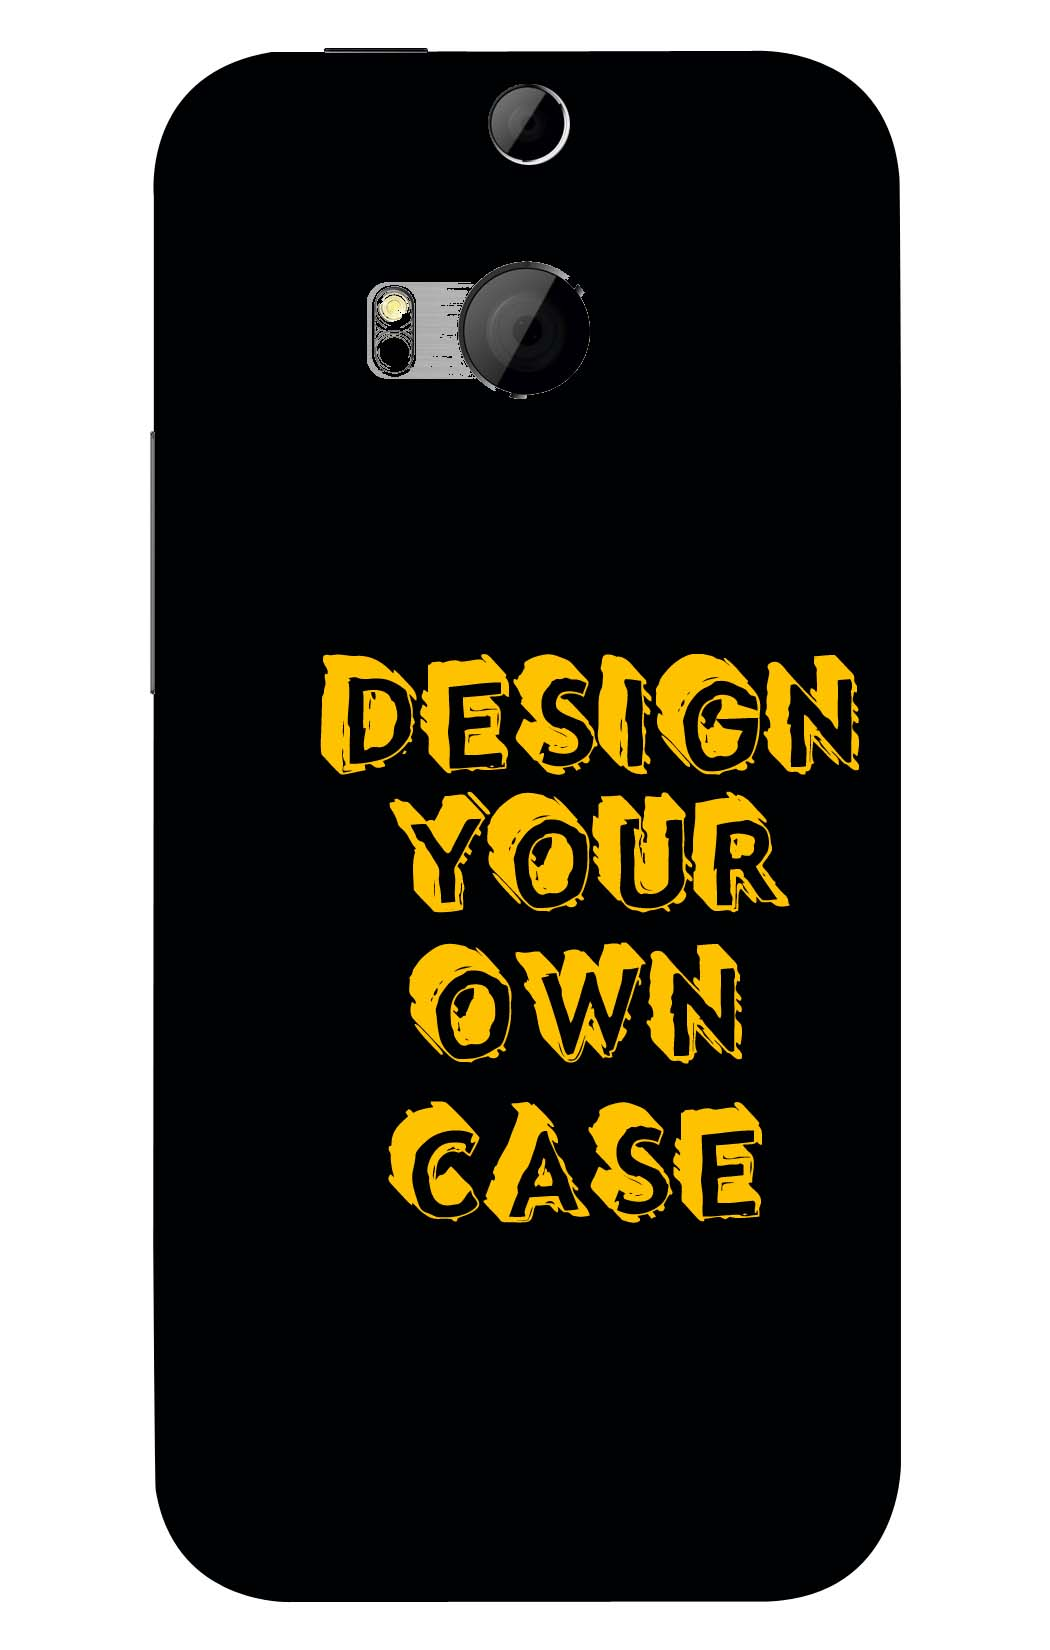 Design Your Own Case for  HTC One  M8